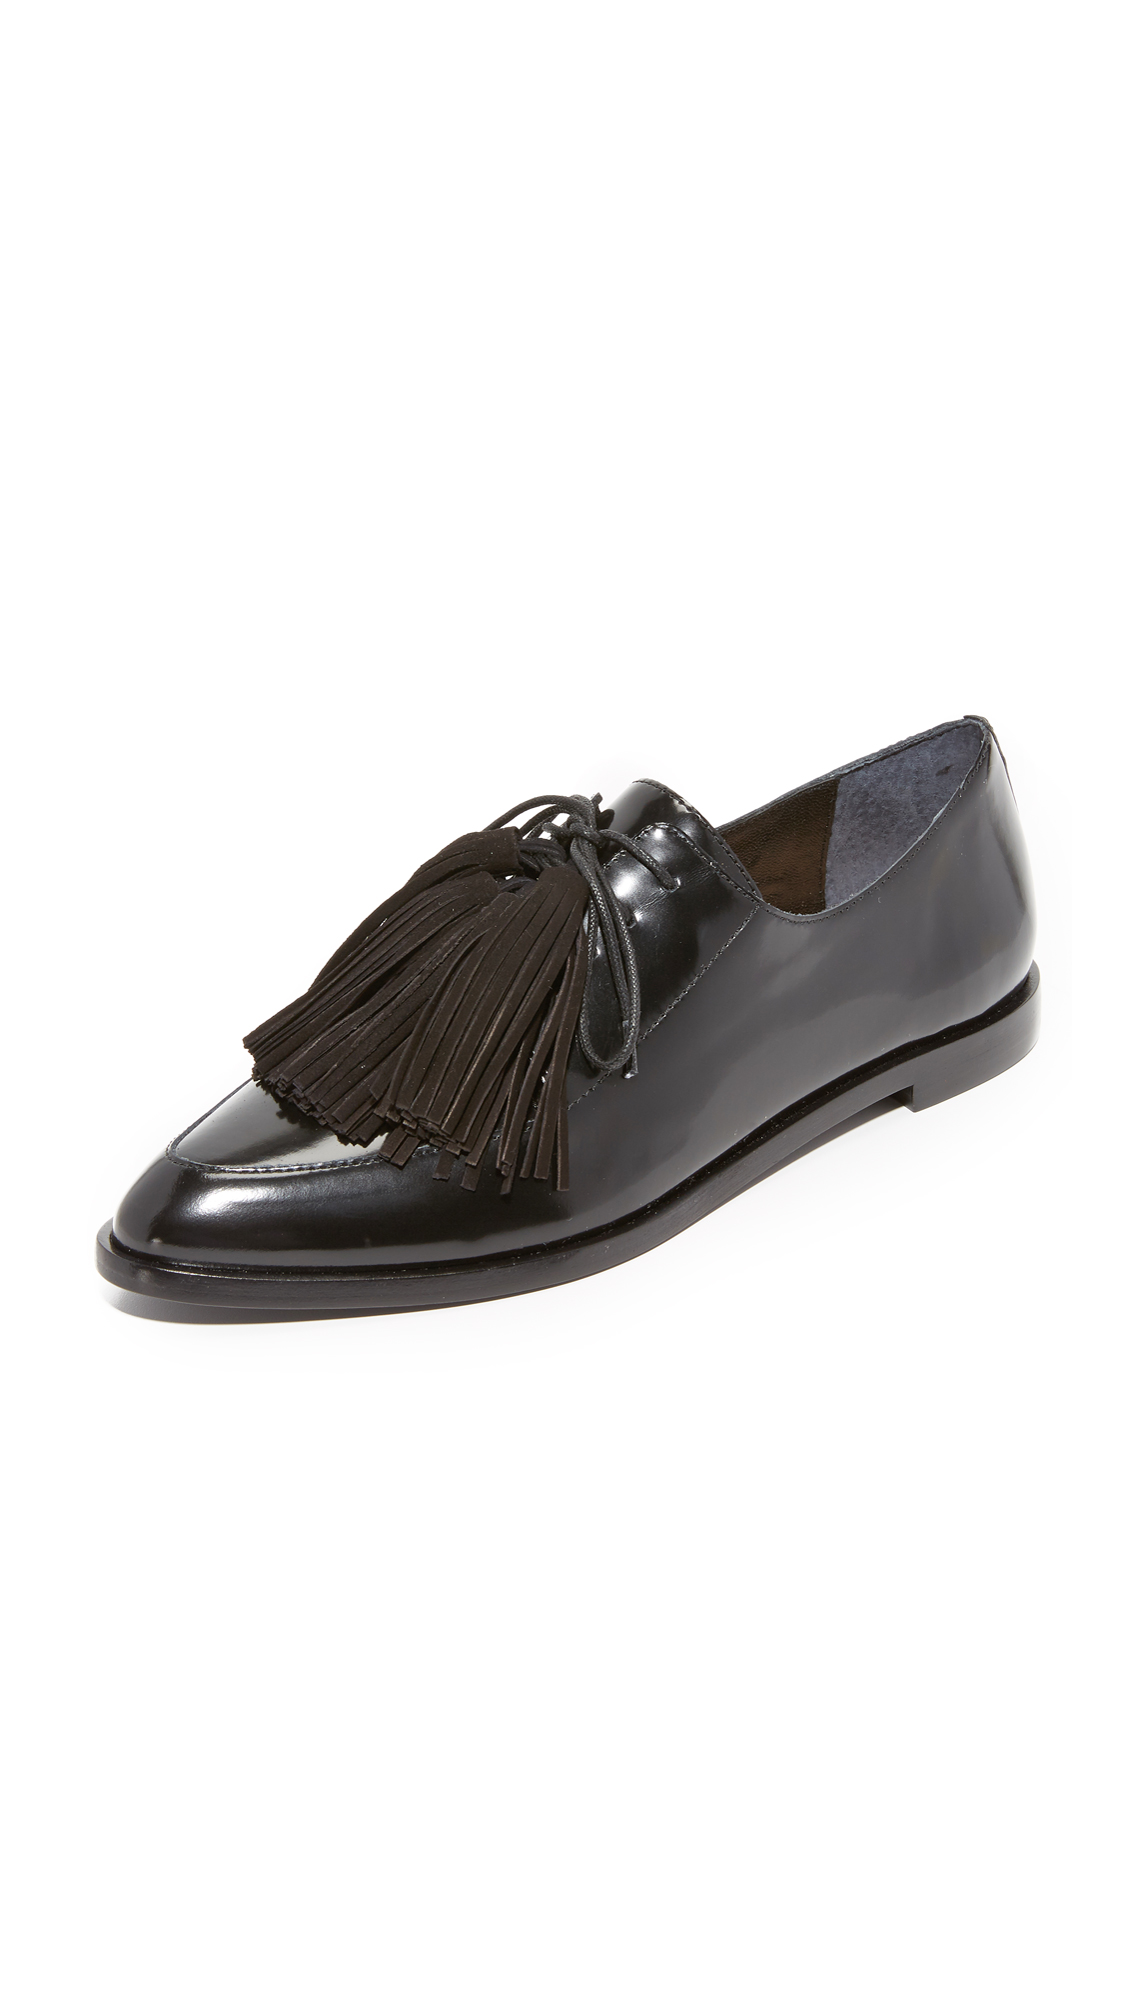 Classic leather oxfords, styled with a pointed toe and a highly polished finish. Optional tassels accent the tie closure. Leather sole. Leather: Cowhide. Imported, Brazil. This item cannot be gift boxed. Available sizes: 5,6,6.5,7,8,9